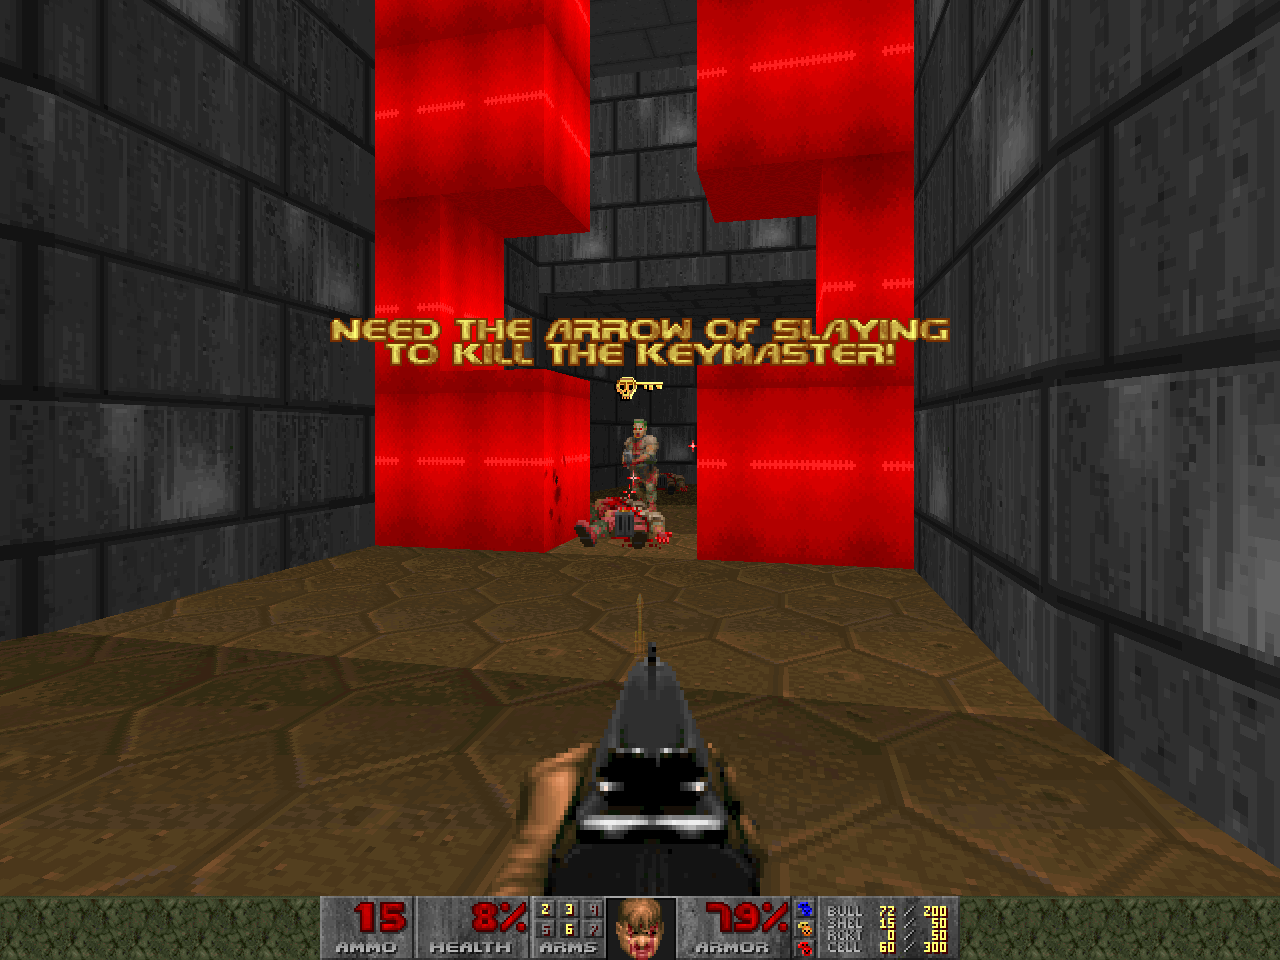 A screenshot from Keymaster.